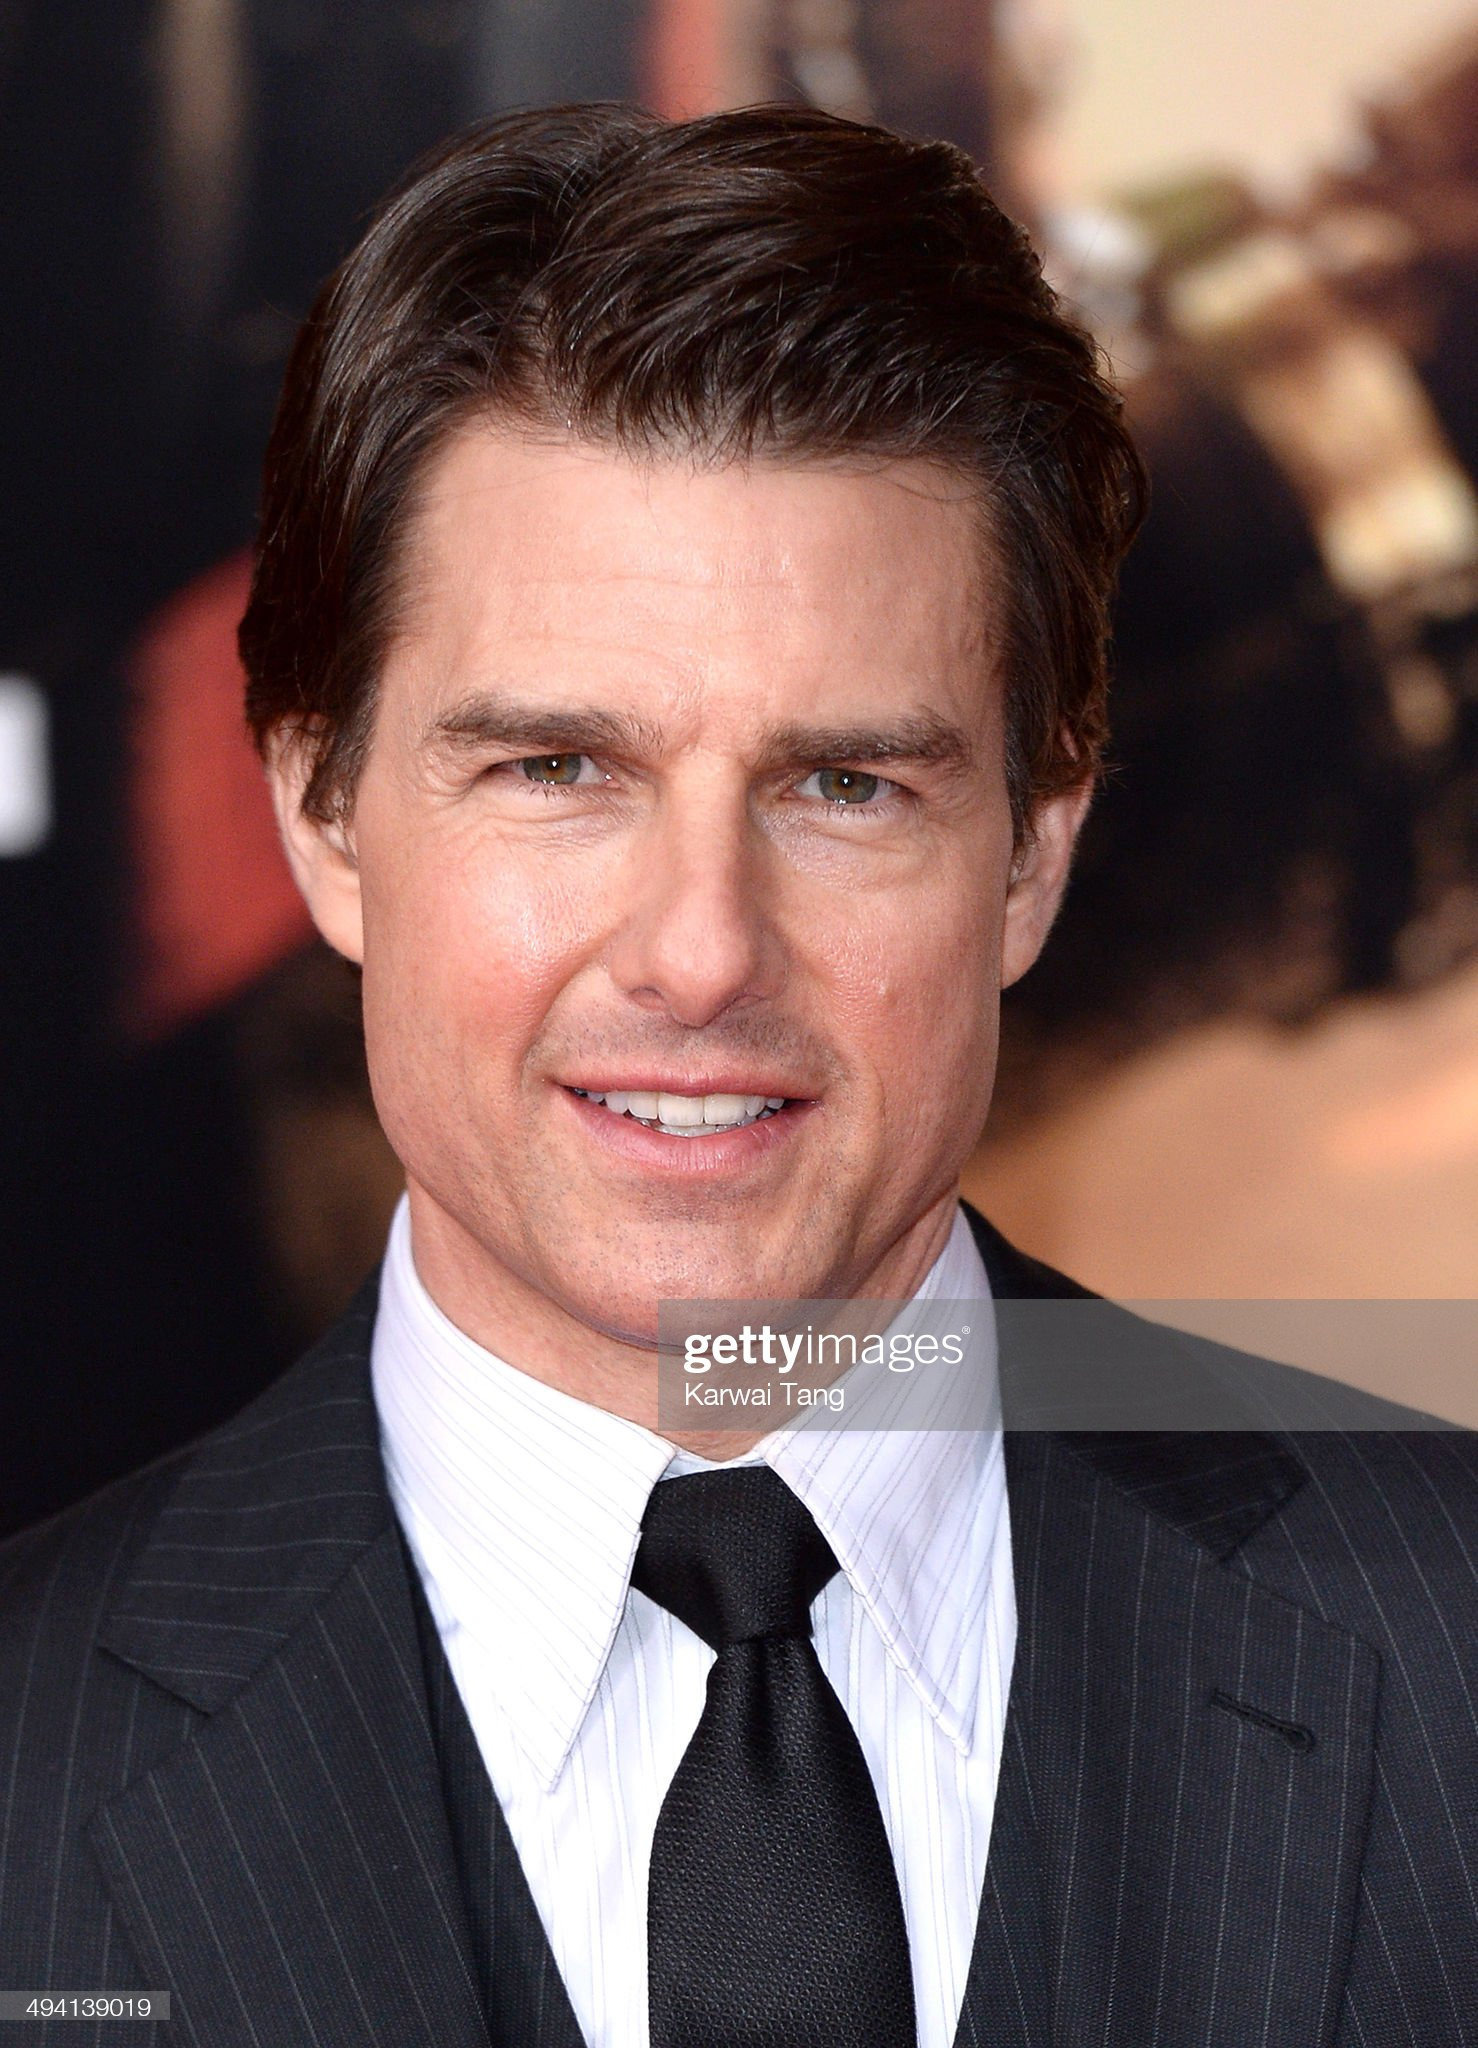 Tom Cruise (Galería de fotos) Tom-cruise-attends-the-premiere-of-edge-of-tomorrow-held-at-the-bfi-picture-id494139019?s=2048x2048